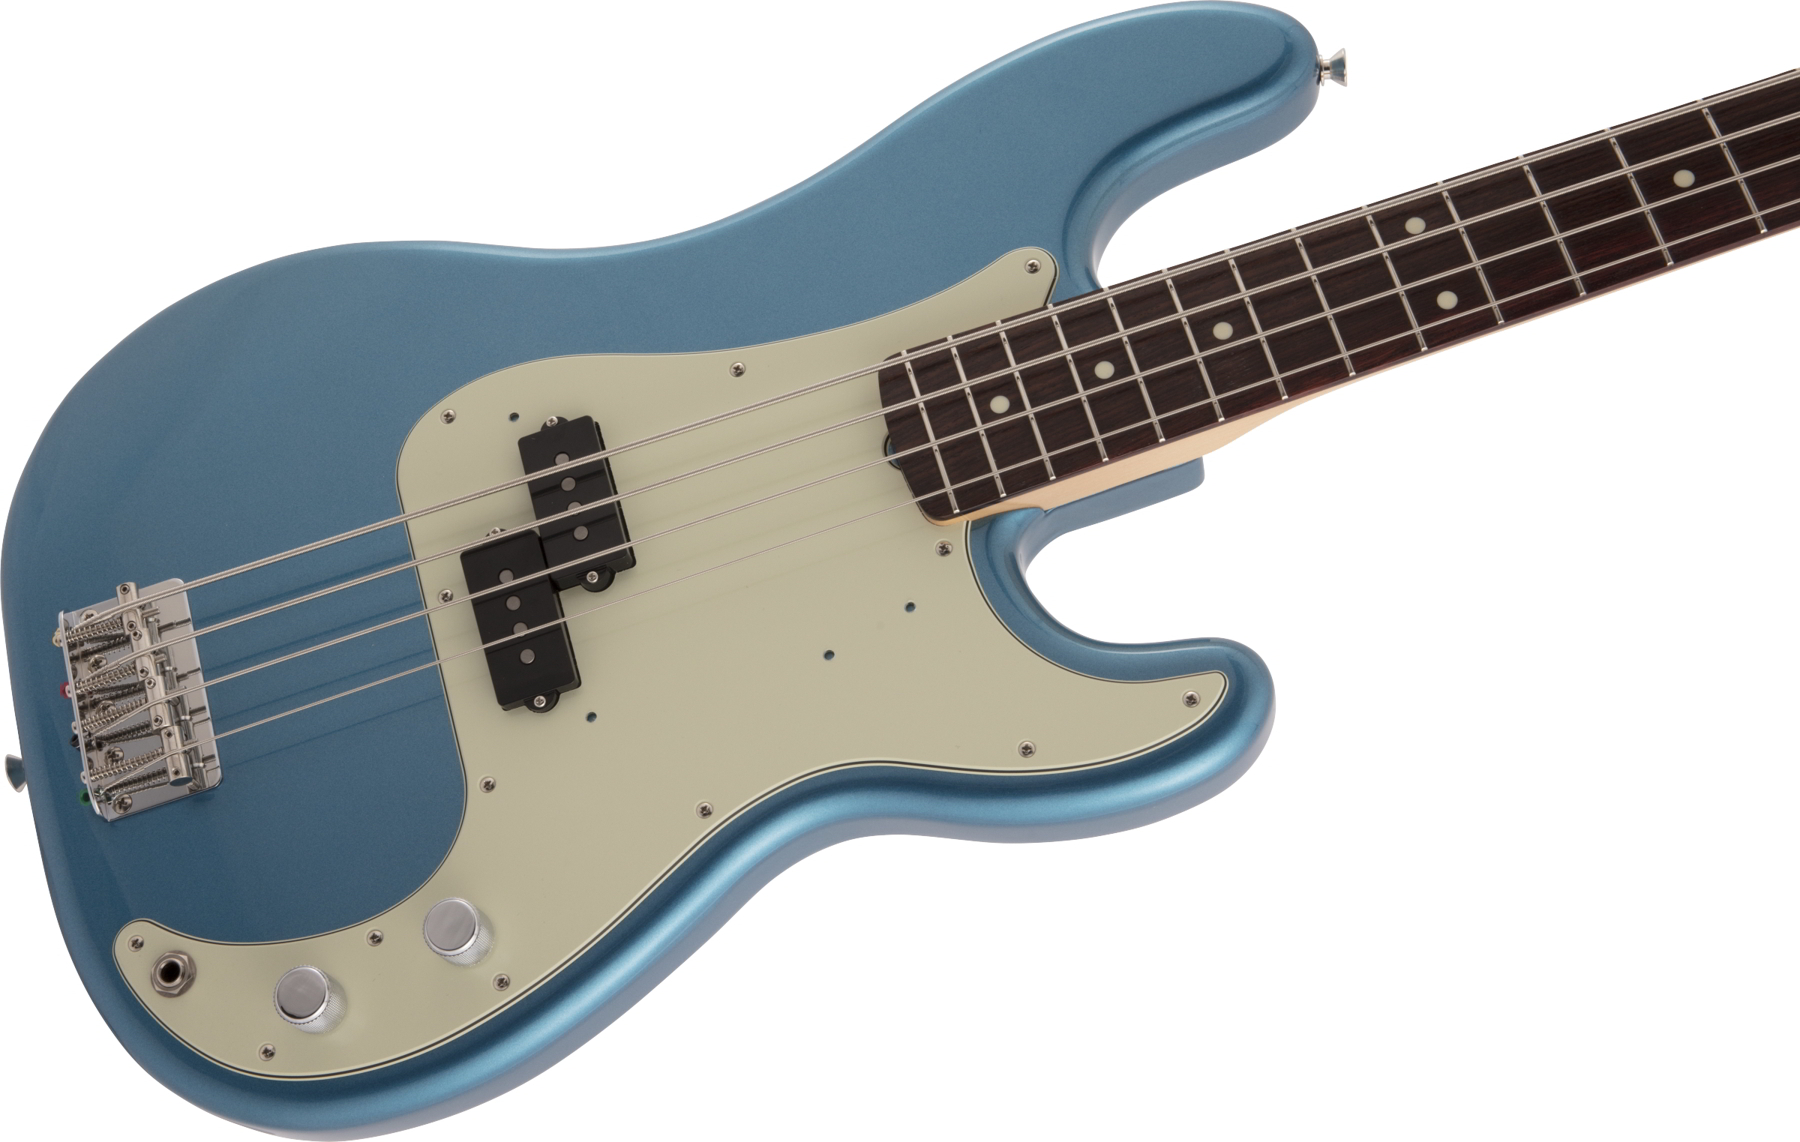 2020 Collection, Made in Japan Traditional 60s Precision Bass Rosewood Fingerboard Lake Placid Blue追加画像